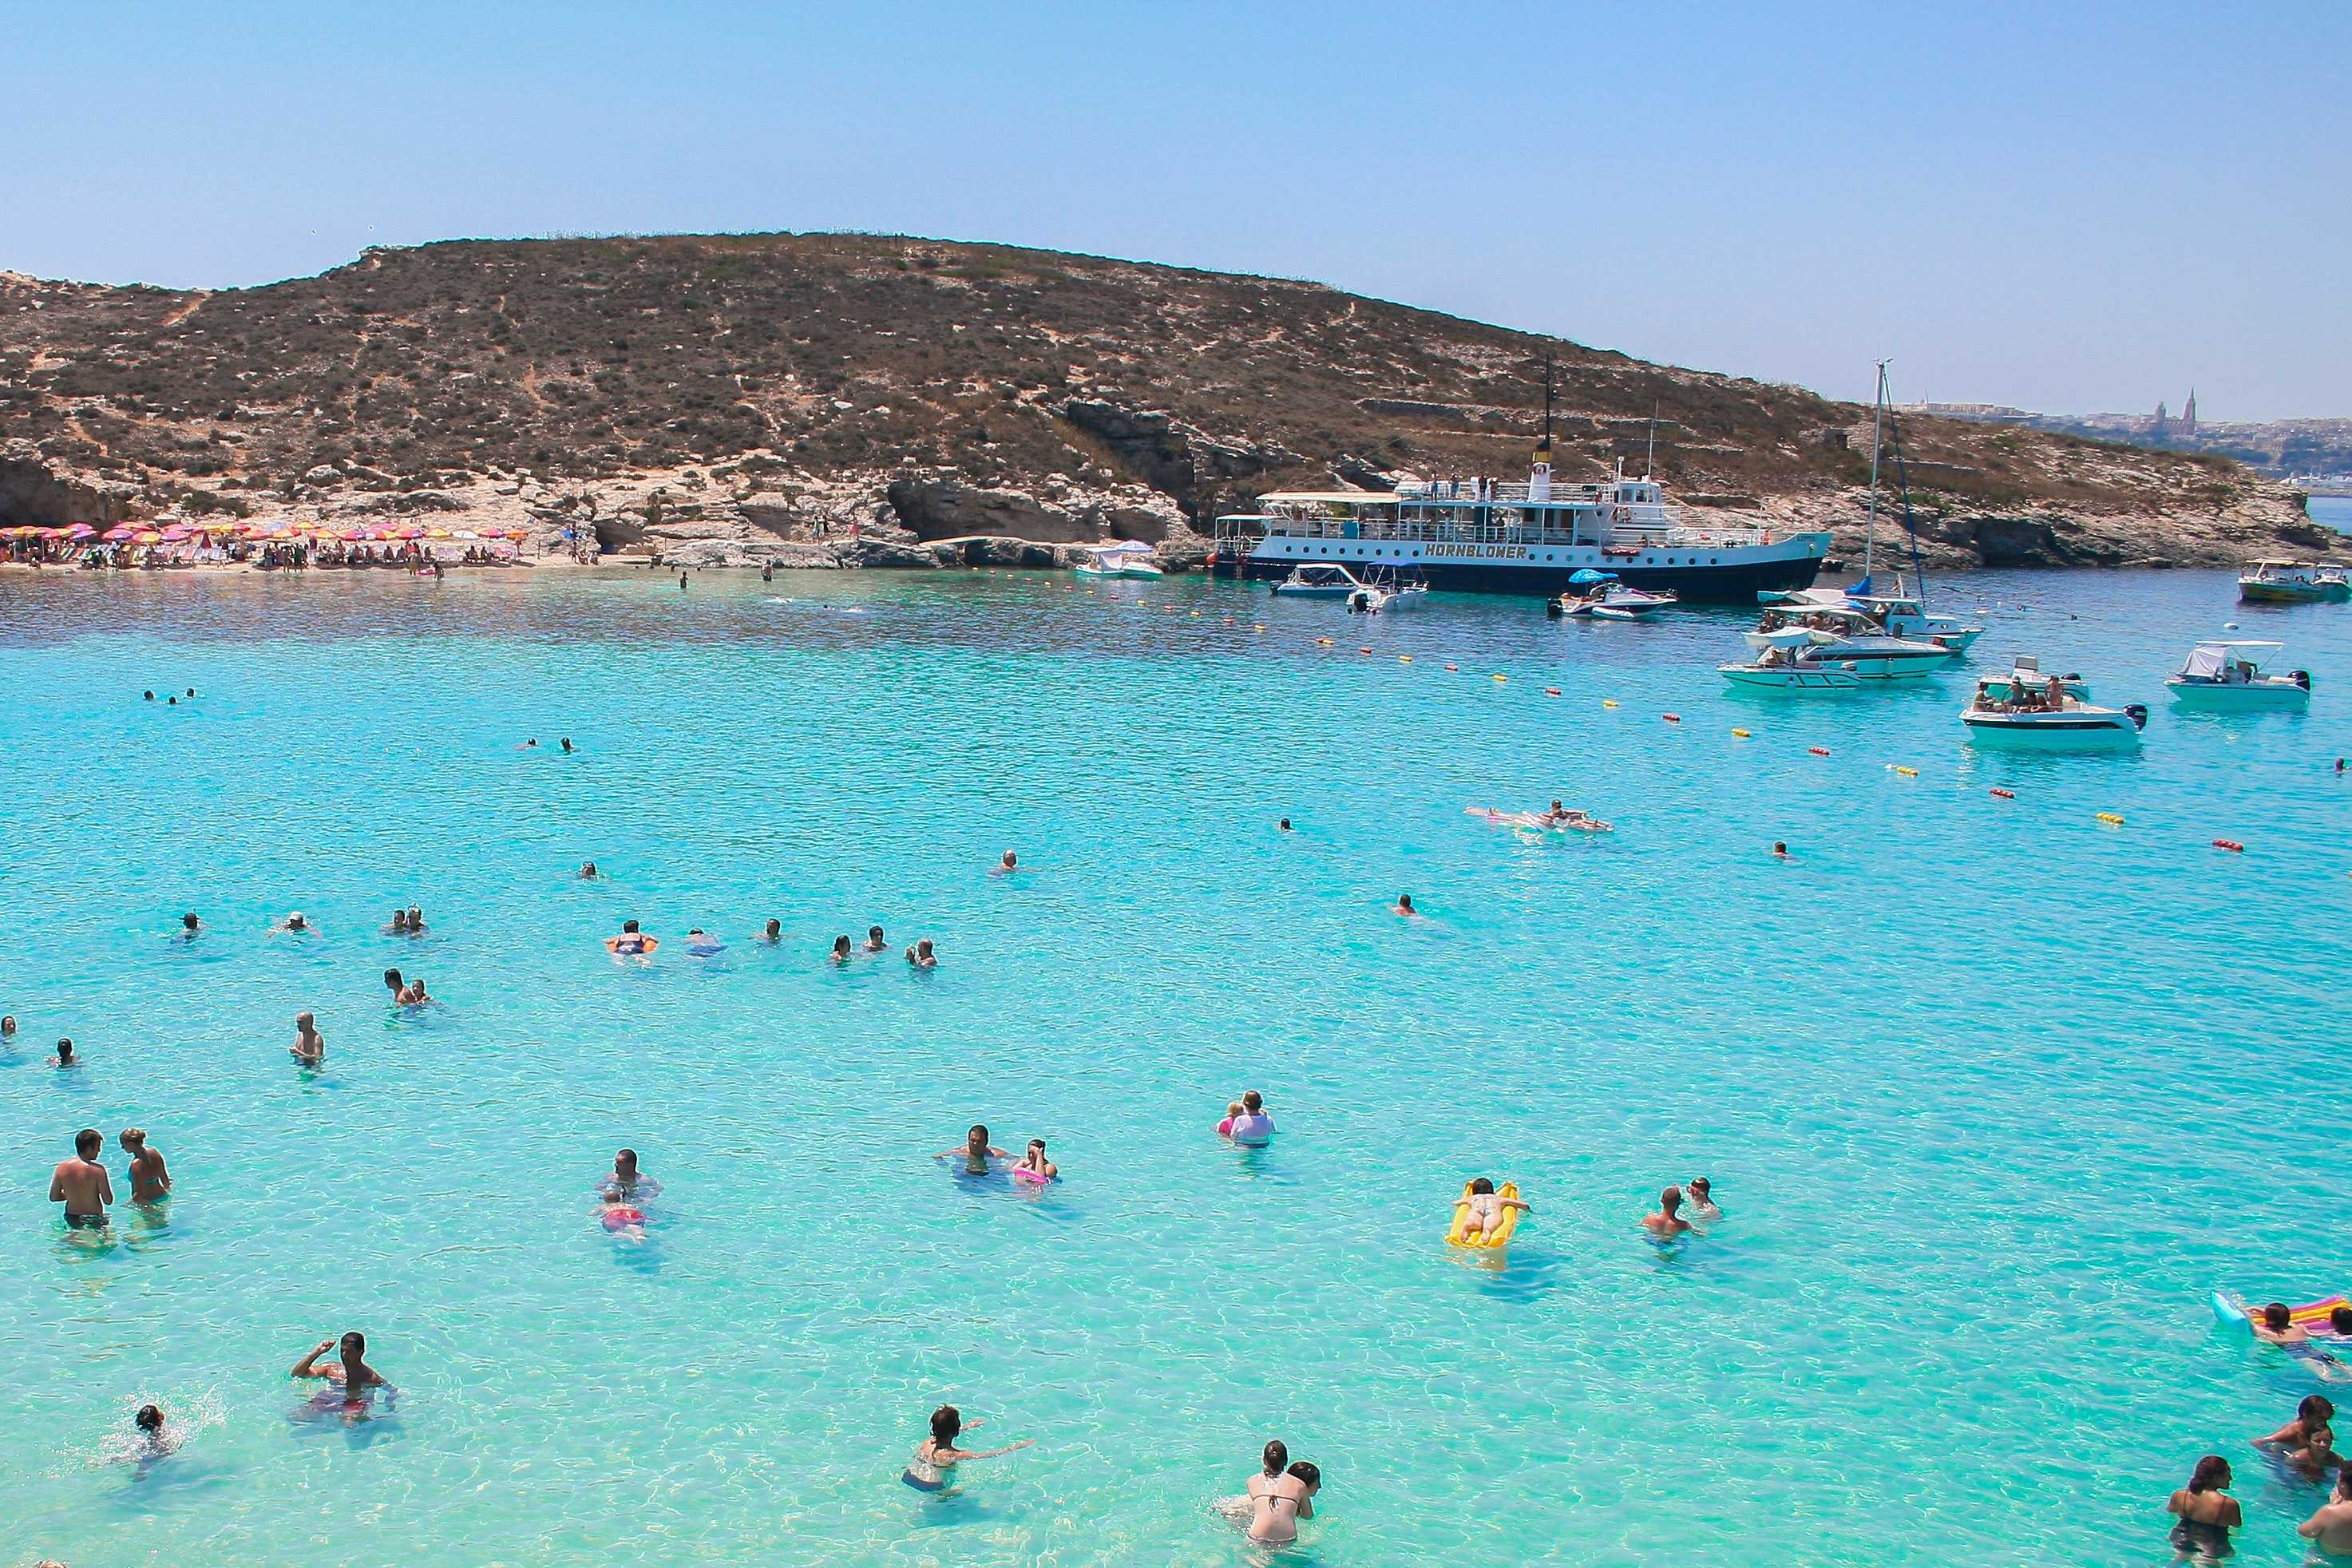 Malta may be the answer for South African investors and emigrants